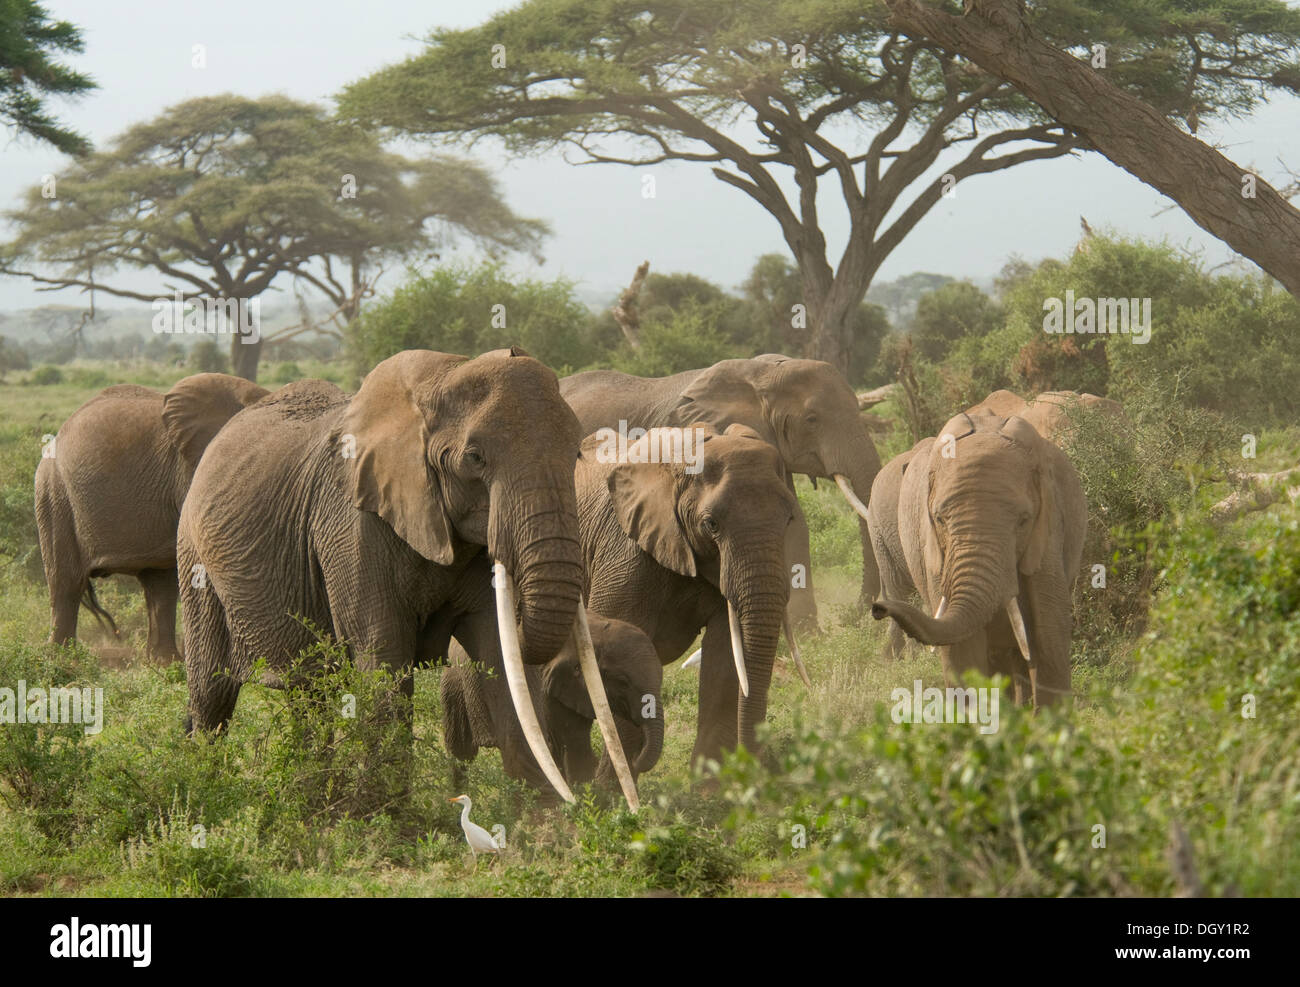 Elephant matriarch with herd - Stock Image